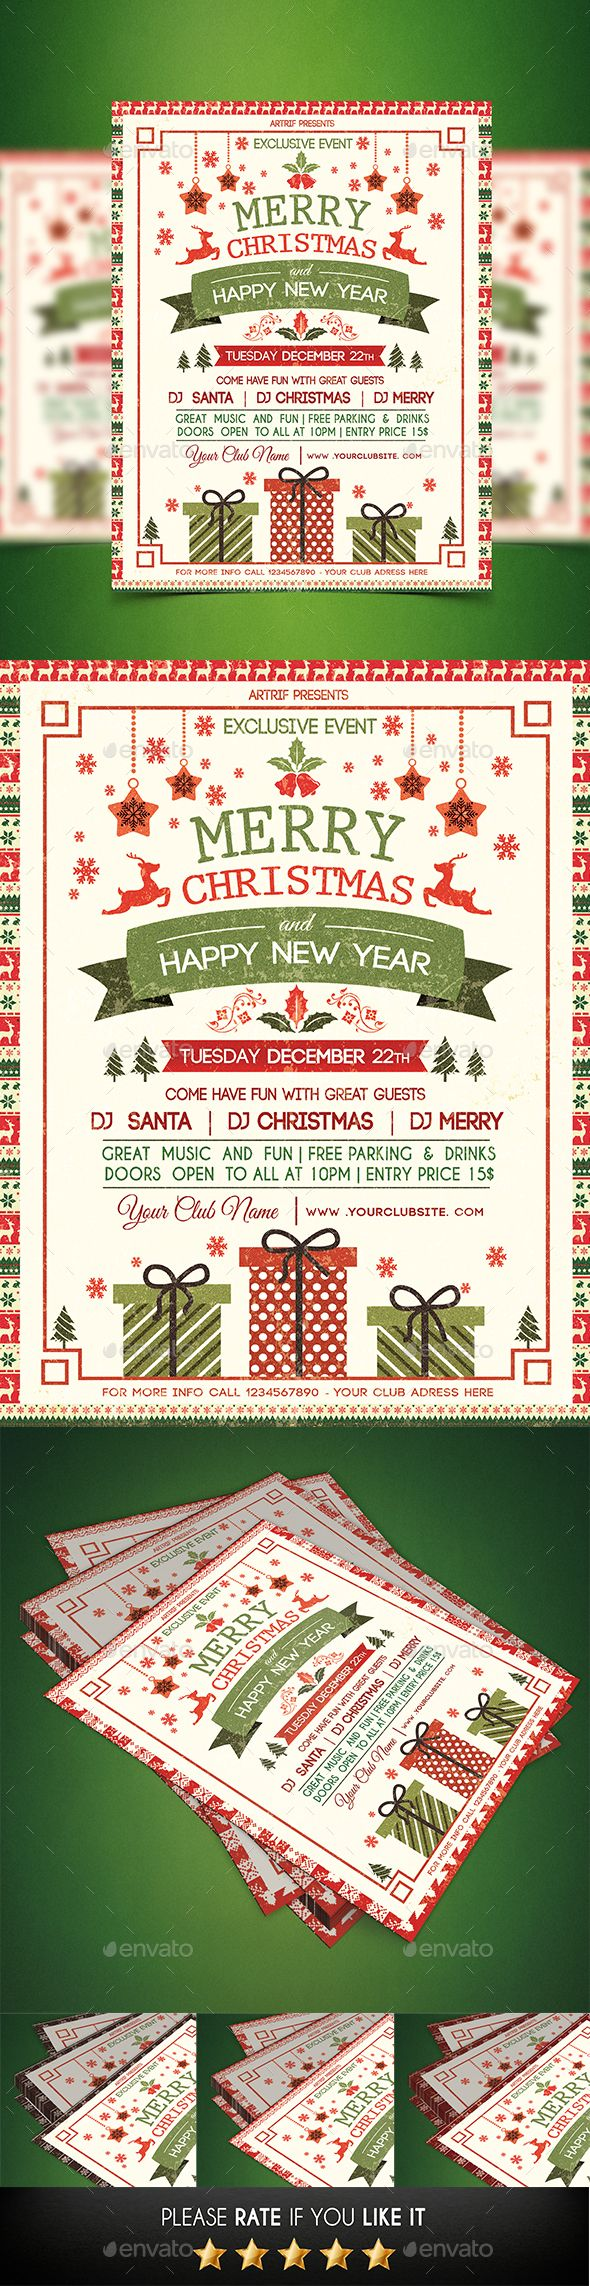 Christmas Party Flyer Template PSD #design Download: http://graphicriver.net/item/christmas-party-flyer/13597968?ref=ksioks